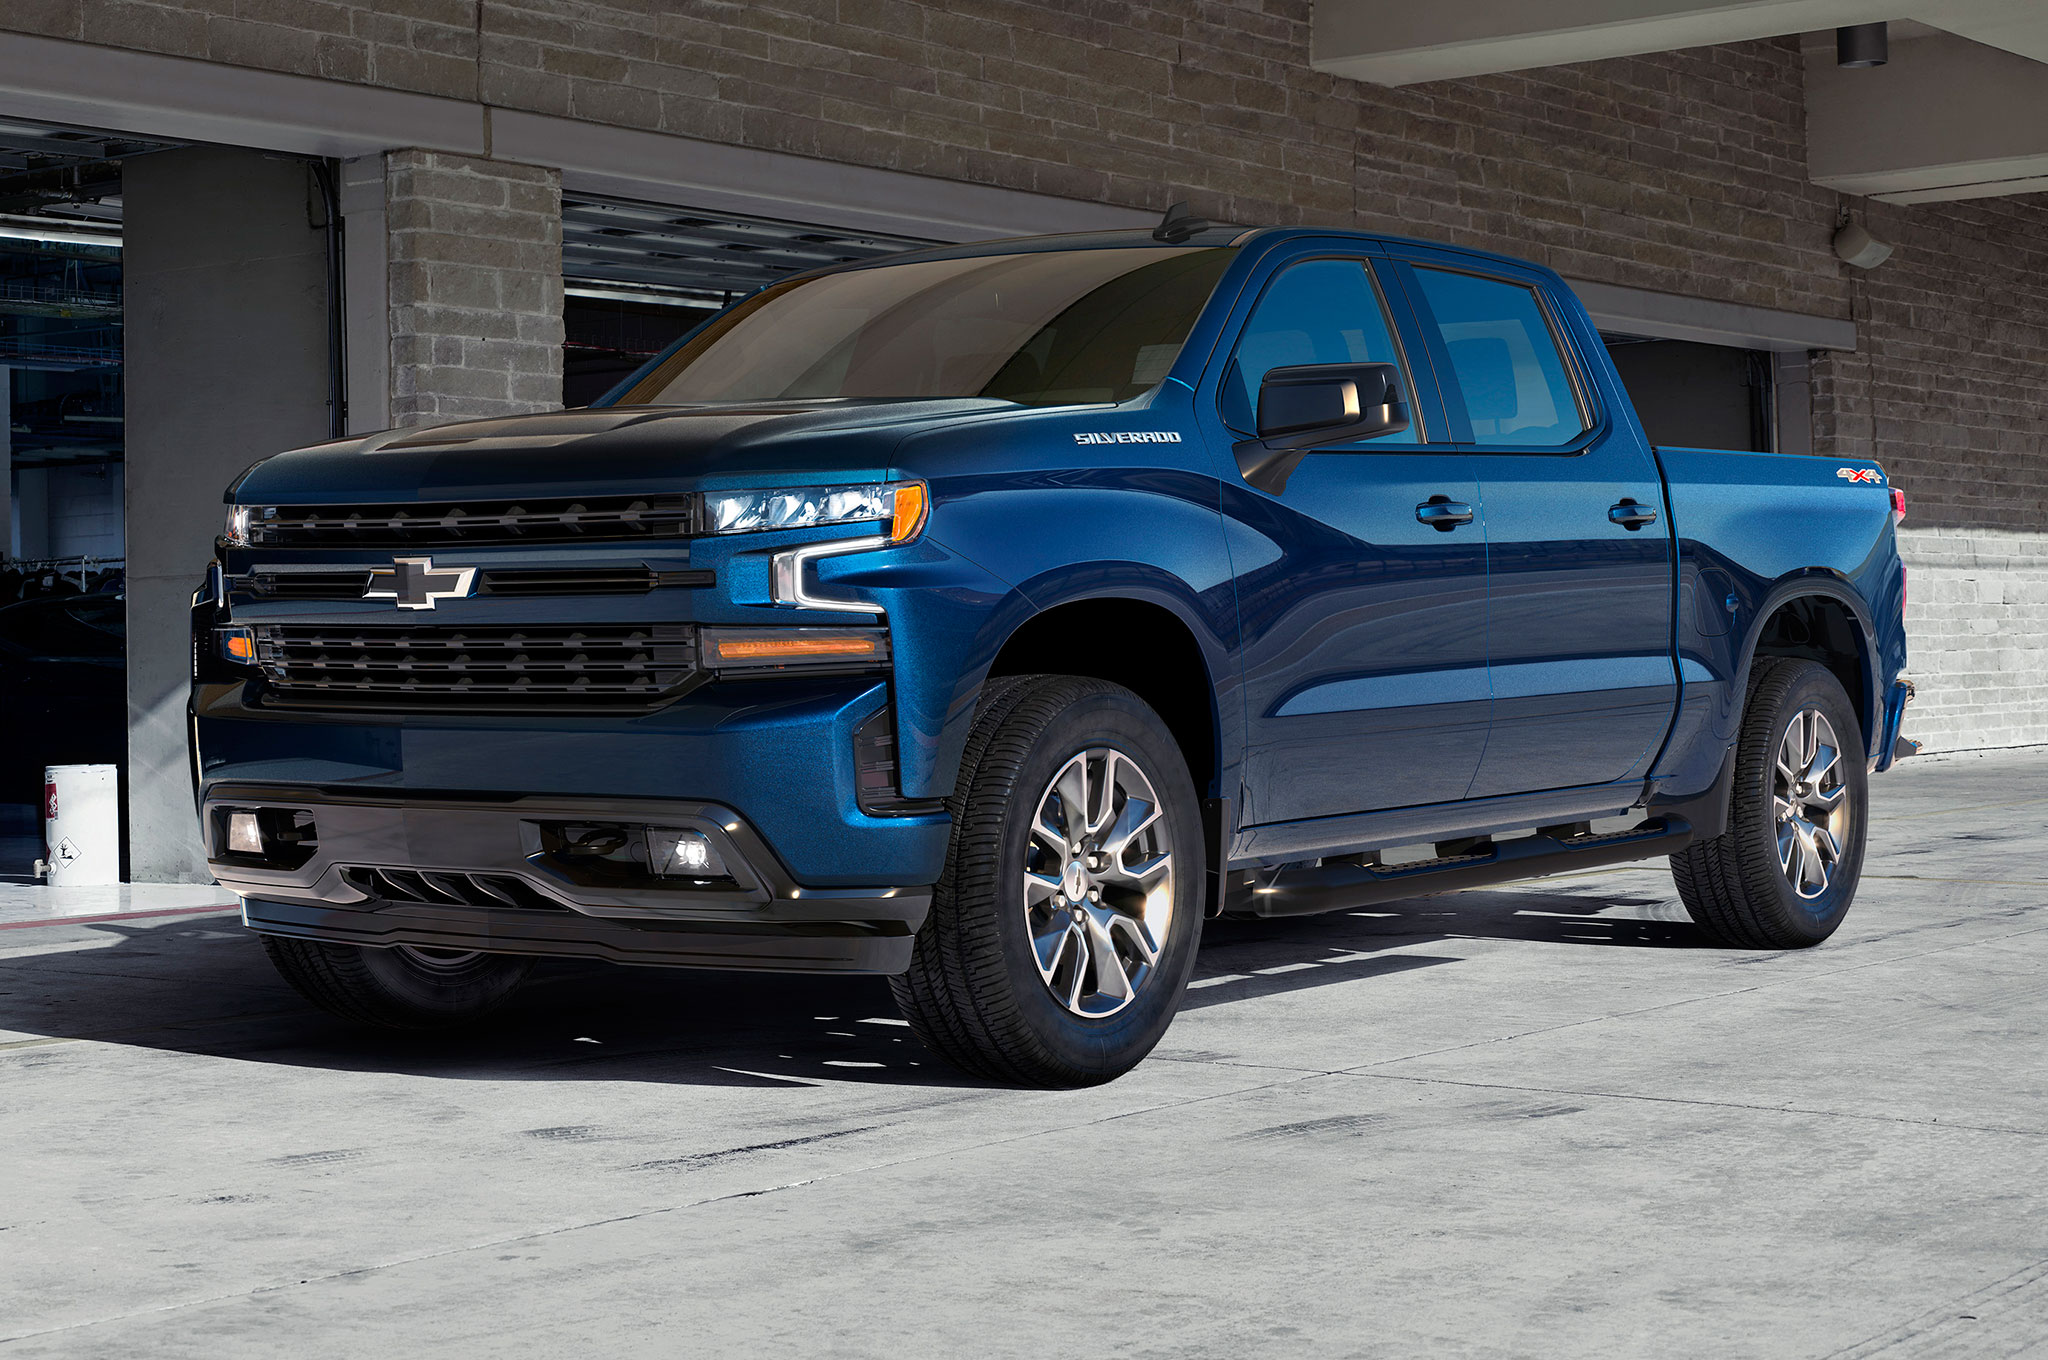 2019 chevrolet silverado 1500 revealed in detroit. Black Bedroom Furniture Sets. Home Design Ideas